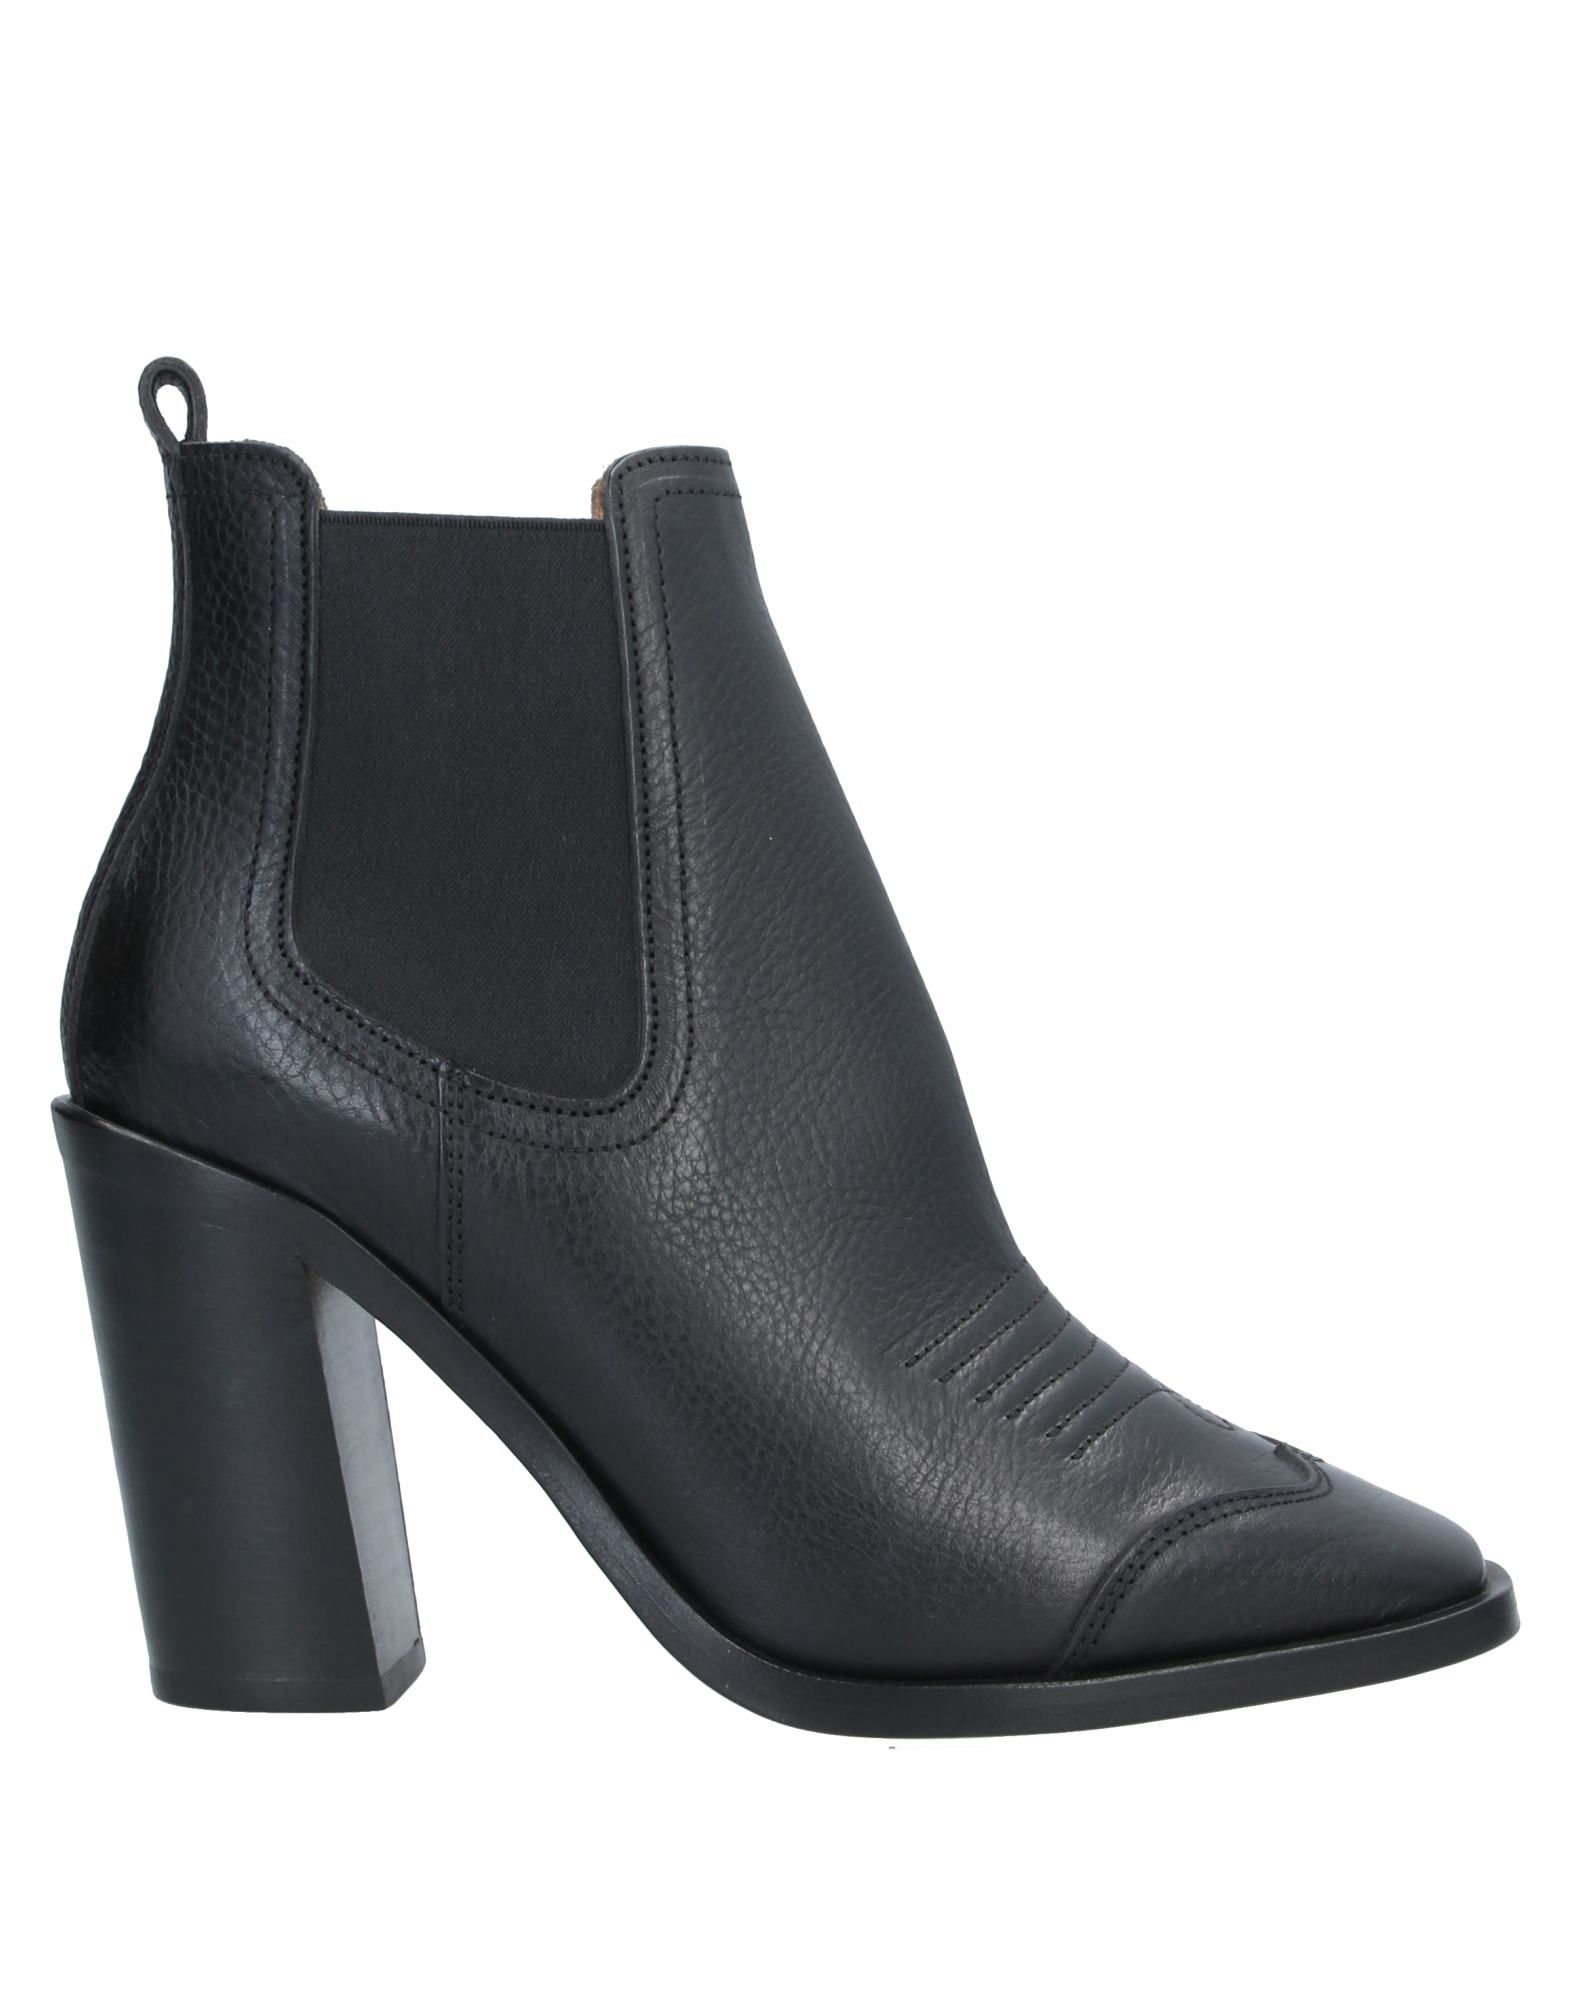 OFF-WHITE™ Ankle boots. leather, stitching, solid color, elasticized gores, square toeline, cuban heel, leather lining, leather sole, contains non-textile parts of animal origin, torn fabric, textured leather, small sized. Soft Leather, Textile fibers